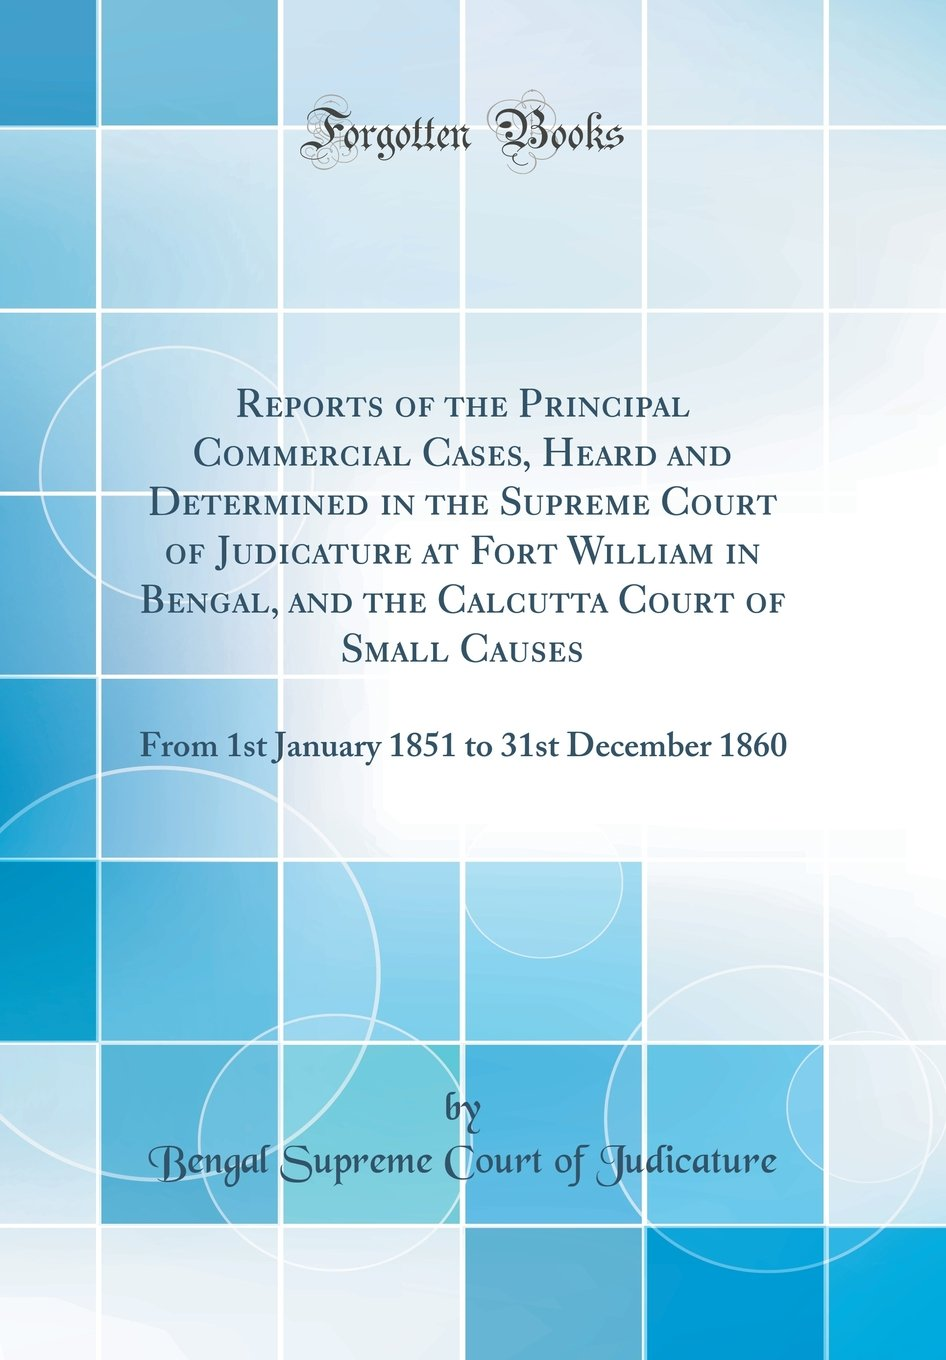 Reports of the Principal Commercial Cases, Heard and Determined in the Supreme Court of Judicature at Fort William in Bengal, and the Calcutta Court ... 1851 to 31st December 1860 (Classic Reprint) ebook